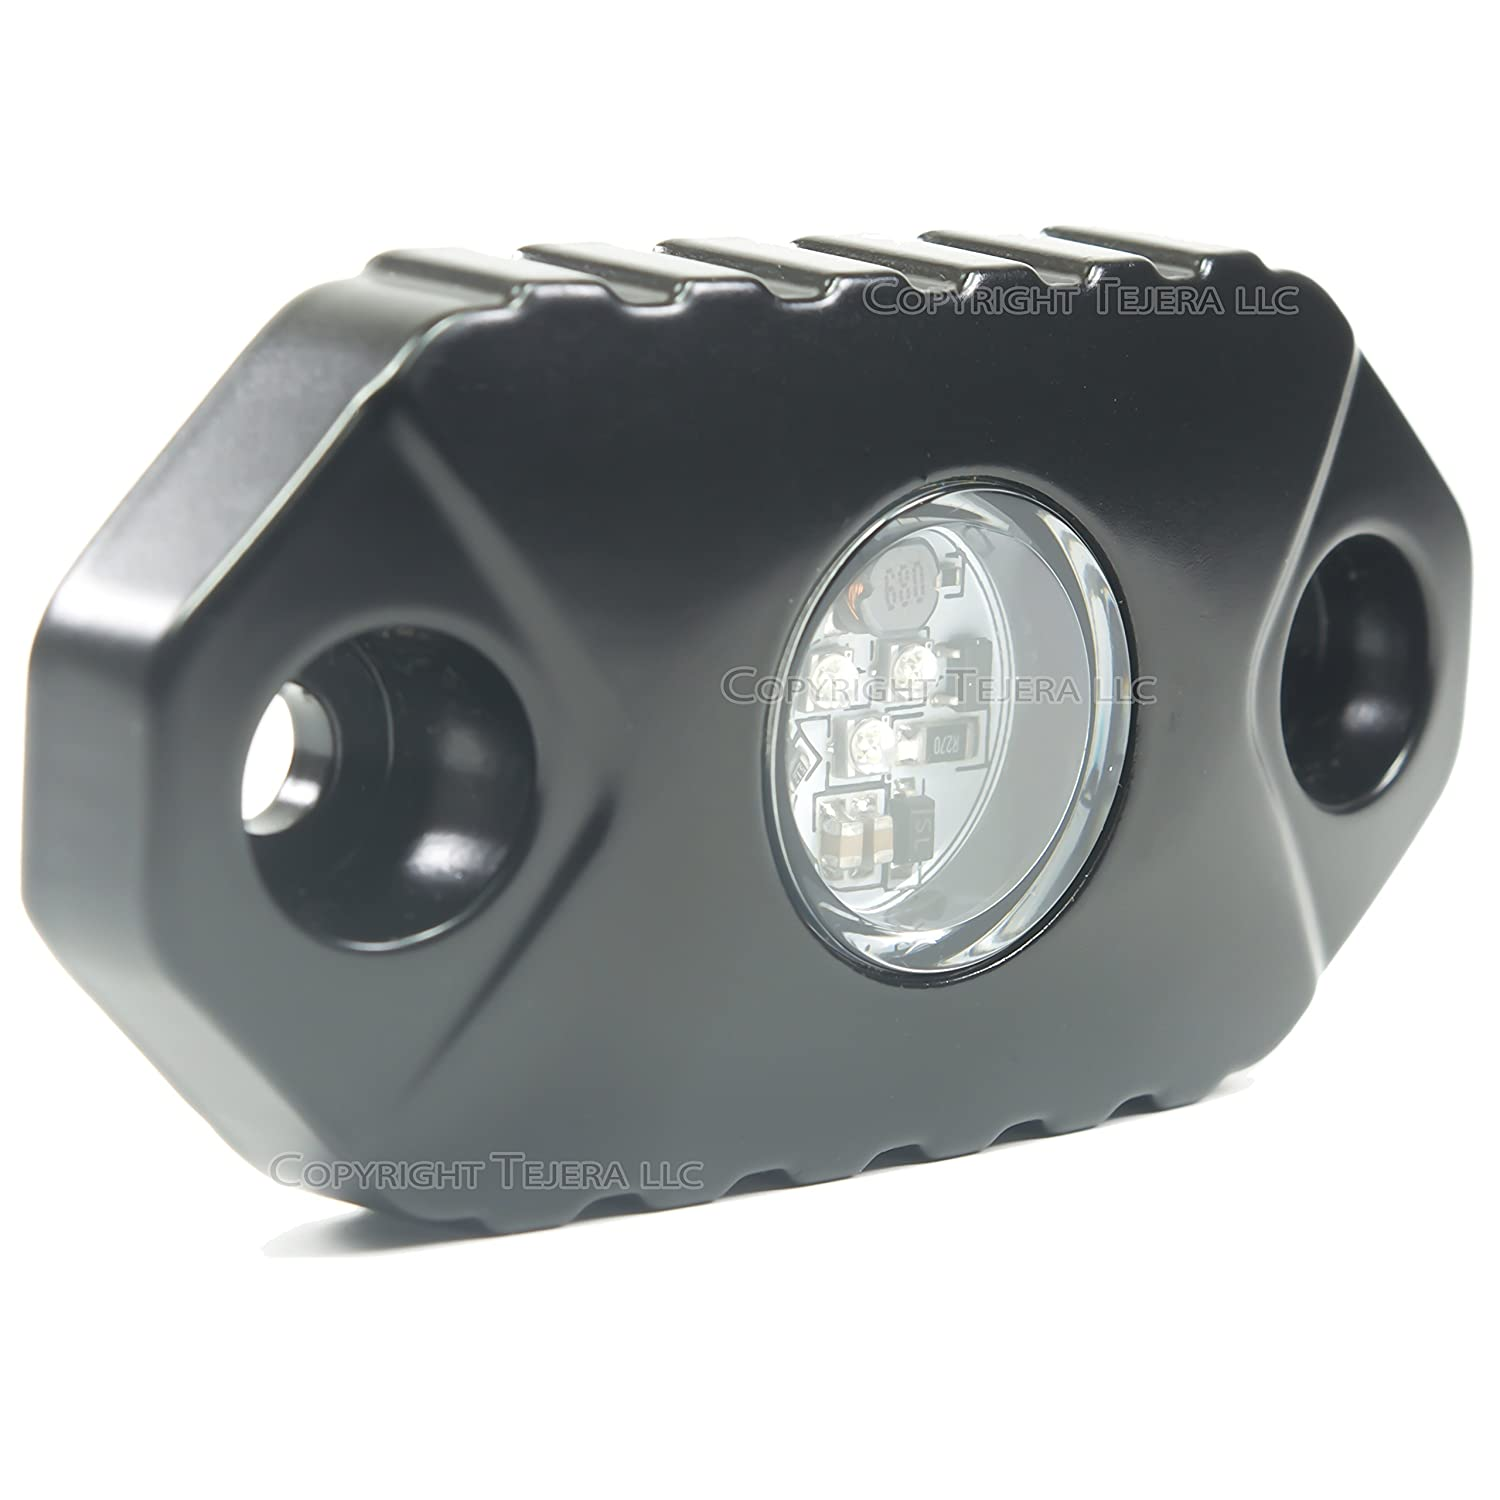 RED Neon Lights For Cars Super Bright CREE LED Replacement - Mini PODs Flood Work Light by SuiTech - For Interior and Exterior Trucks Under Car 4x4 Boat 4wd ATV Motorcycle - Waterproof Shockproof